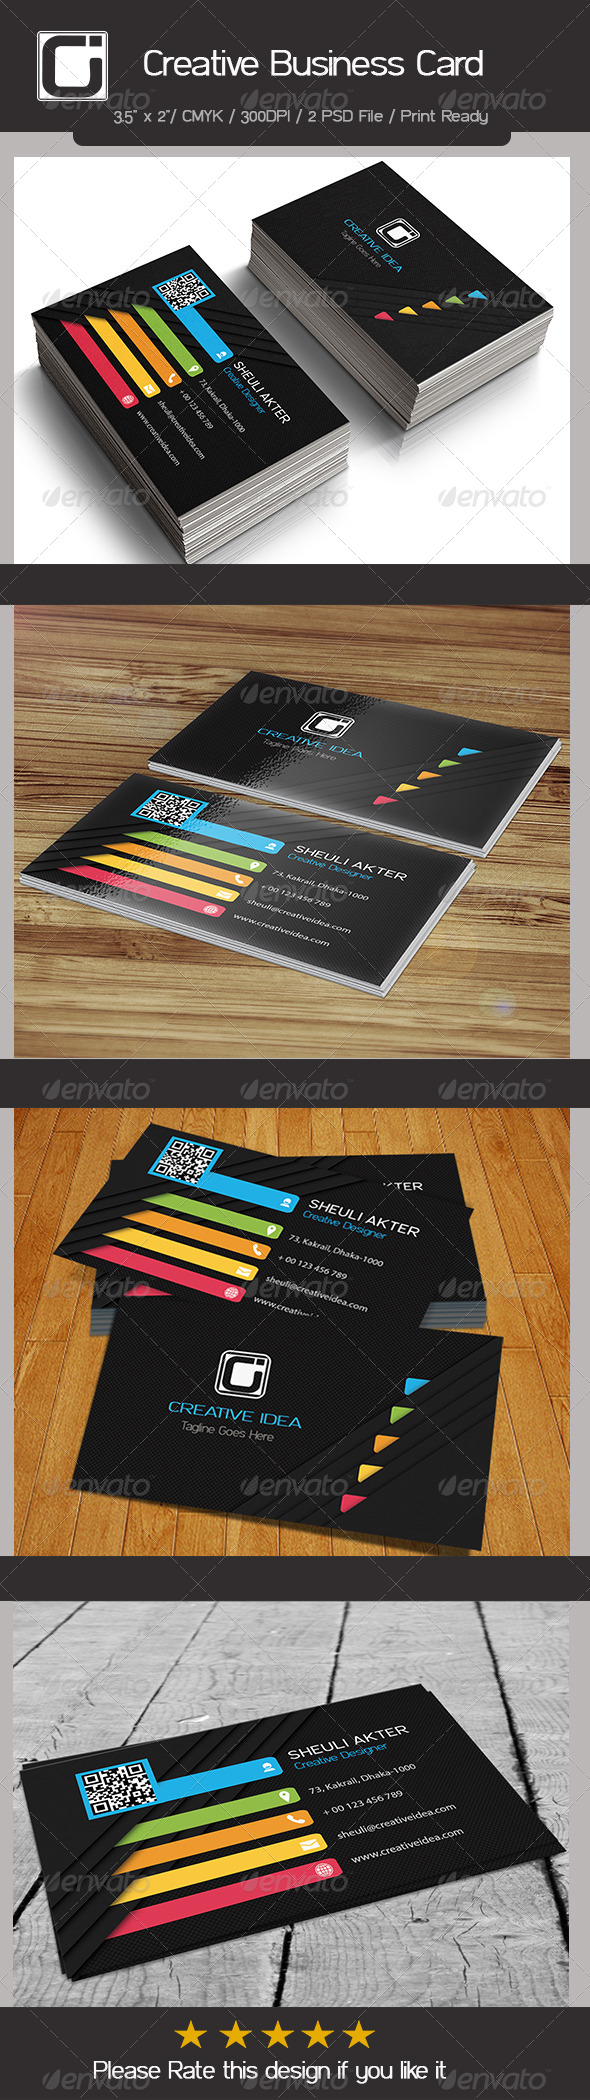 GraphicRiver Creative Business Card 8512051